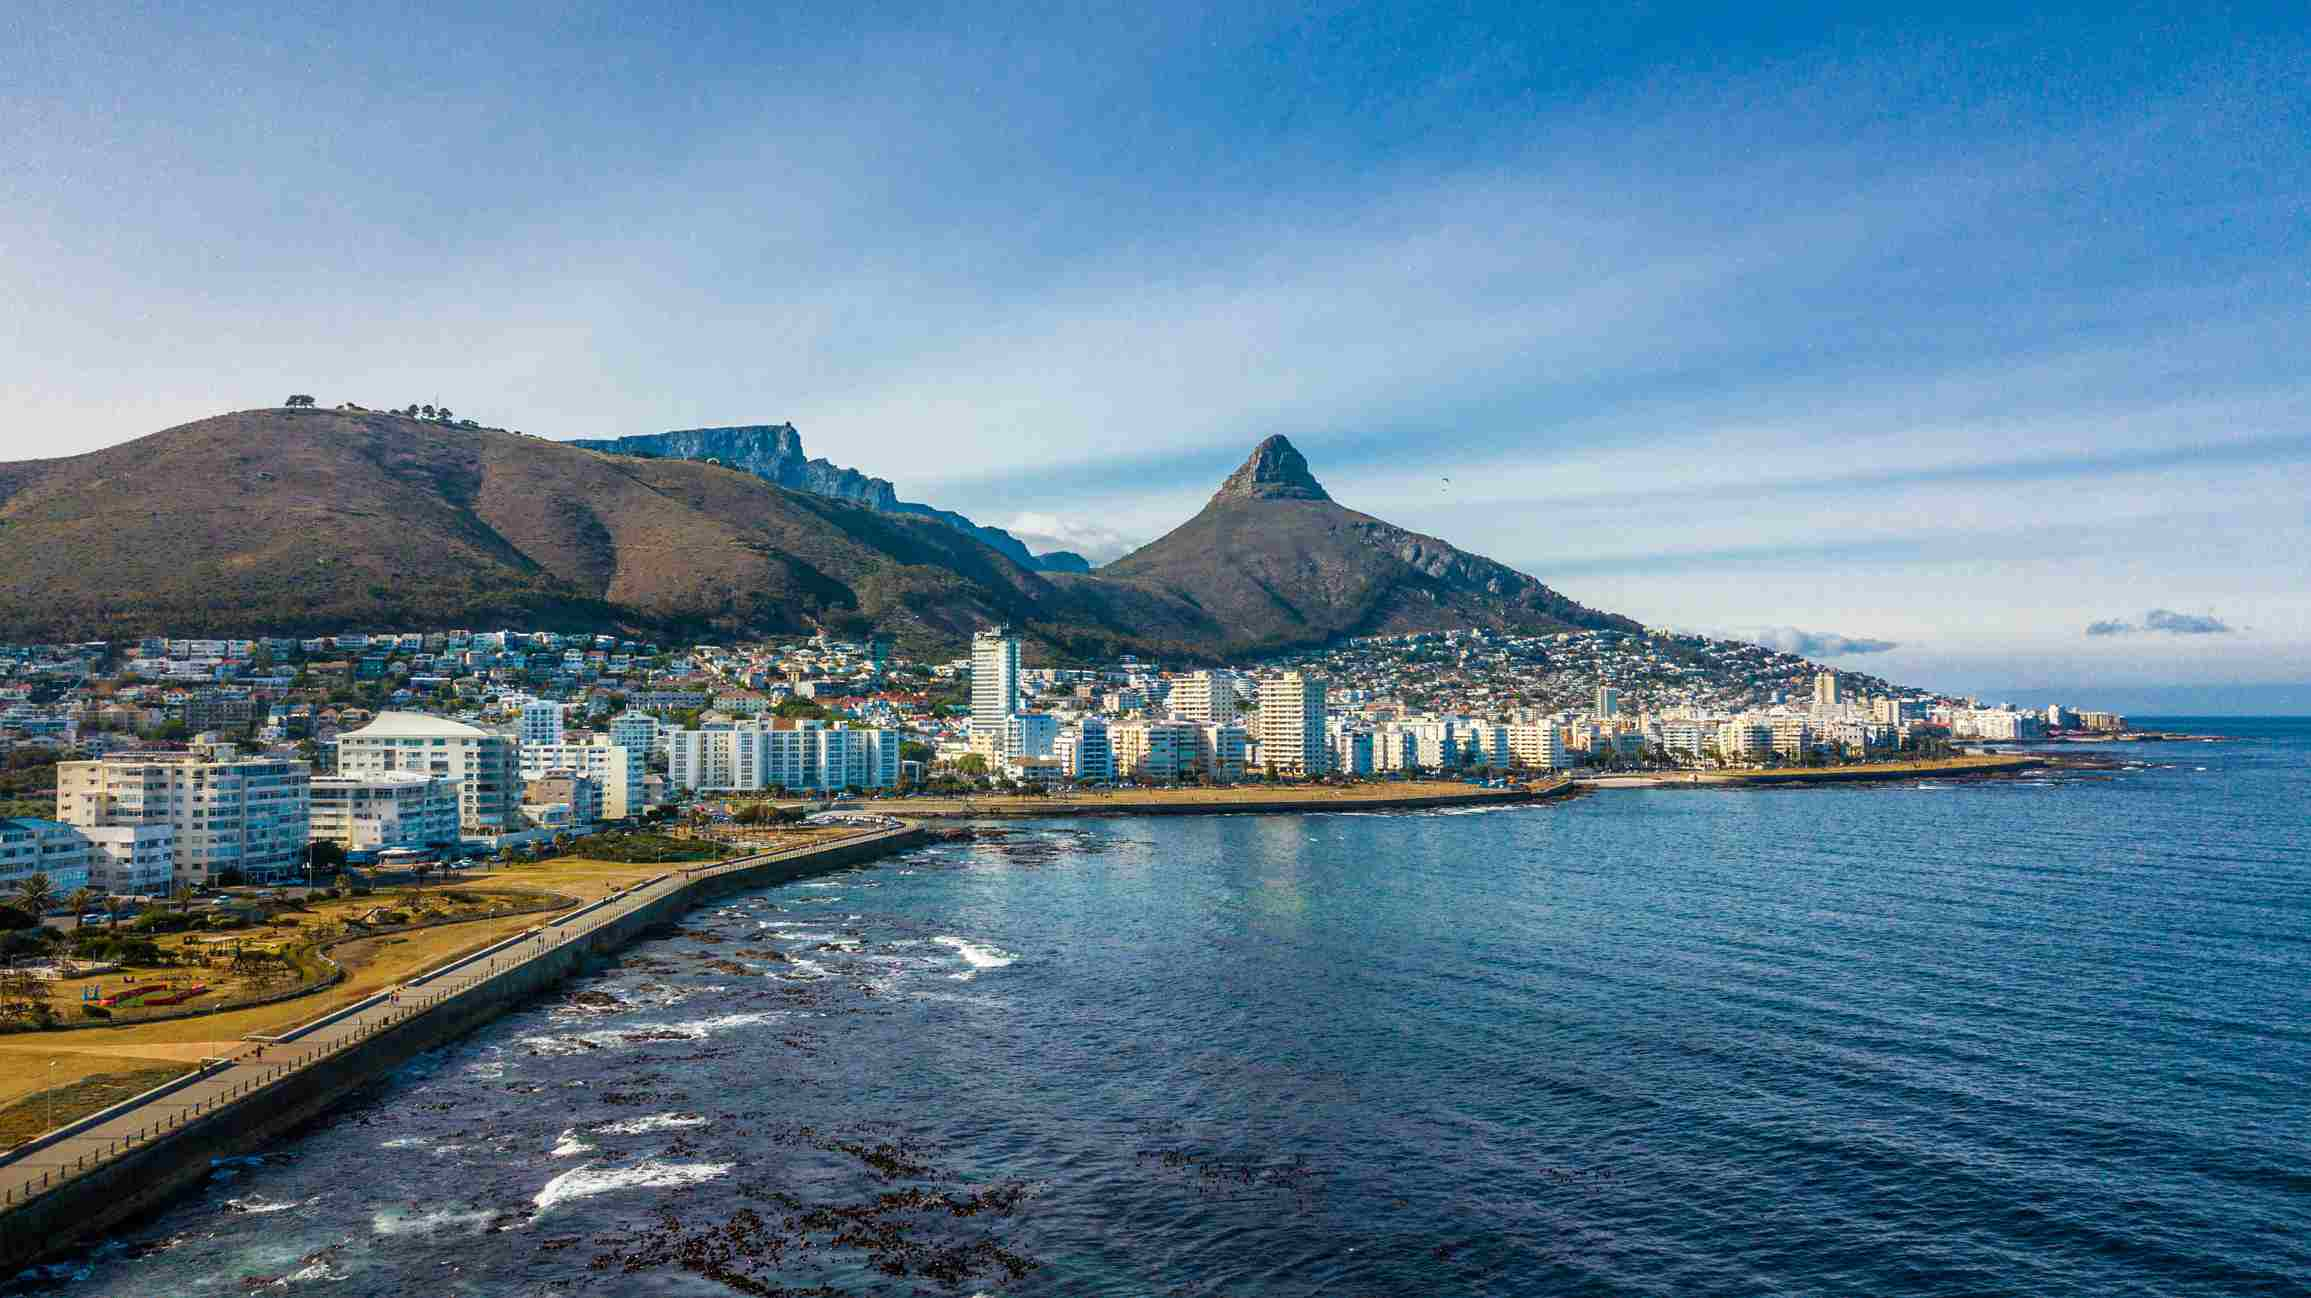 Aerial view of Sea Point, a wealthy suburb on Cape Town's Atlantic seaboard, In the background are Signal Hill, Lion's Head and Table Mountain